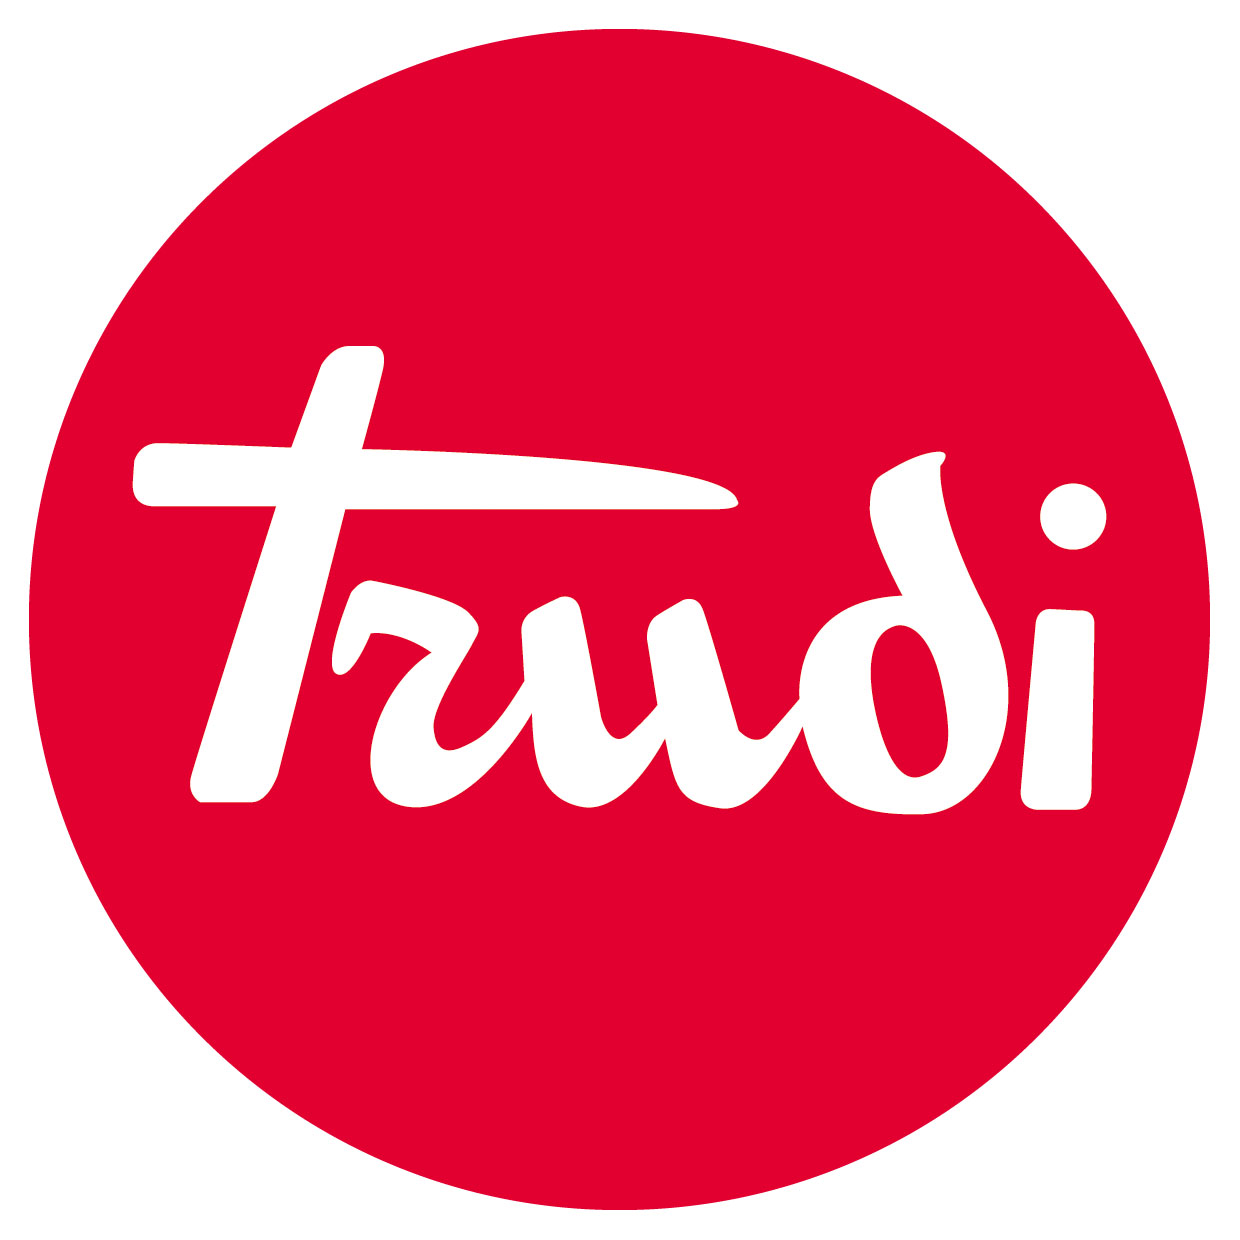 Trudi